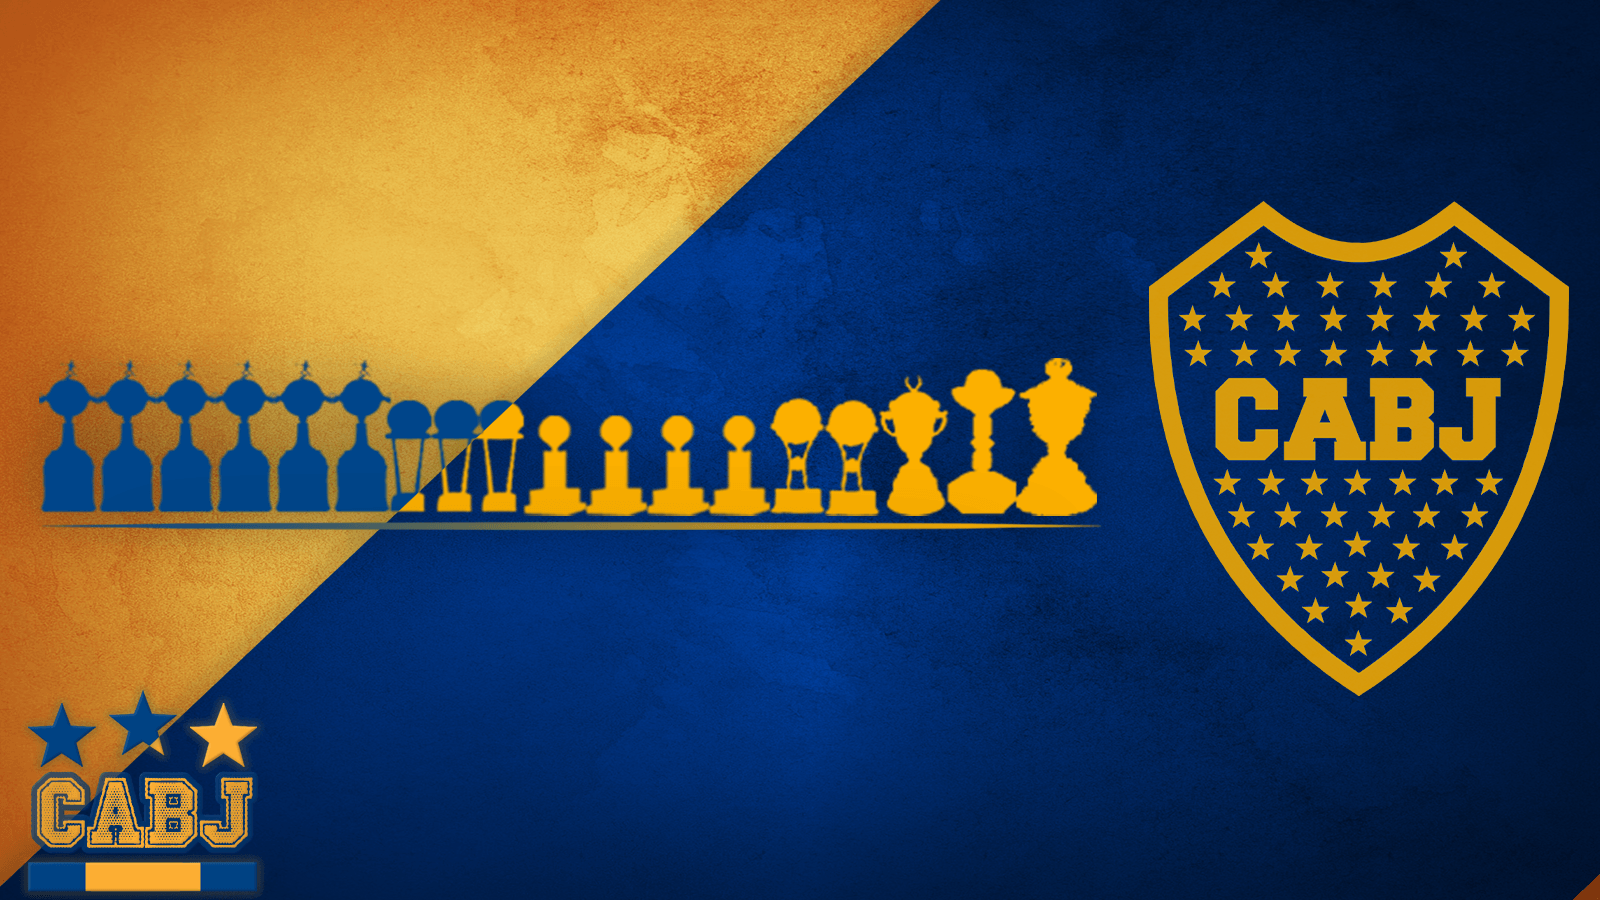 Hd Sports Wallpapers For Iphone Boca Juniors Hd Wallpapers Wallpaper Cave